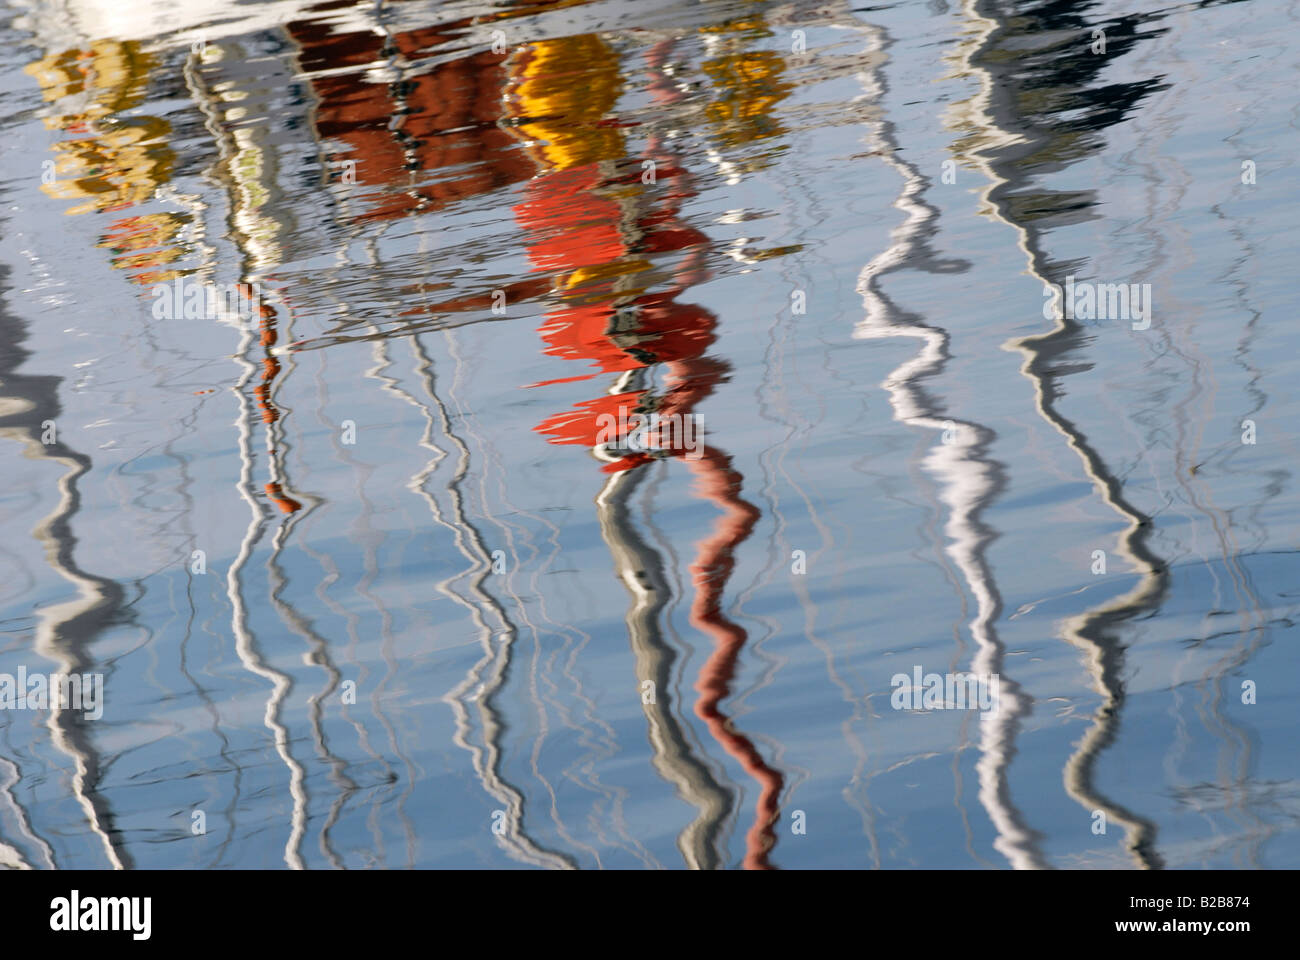 Sailing yacht masts reflected in rippling water - Stock Image